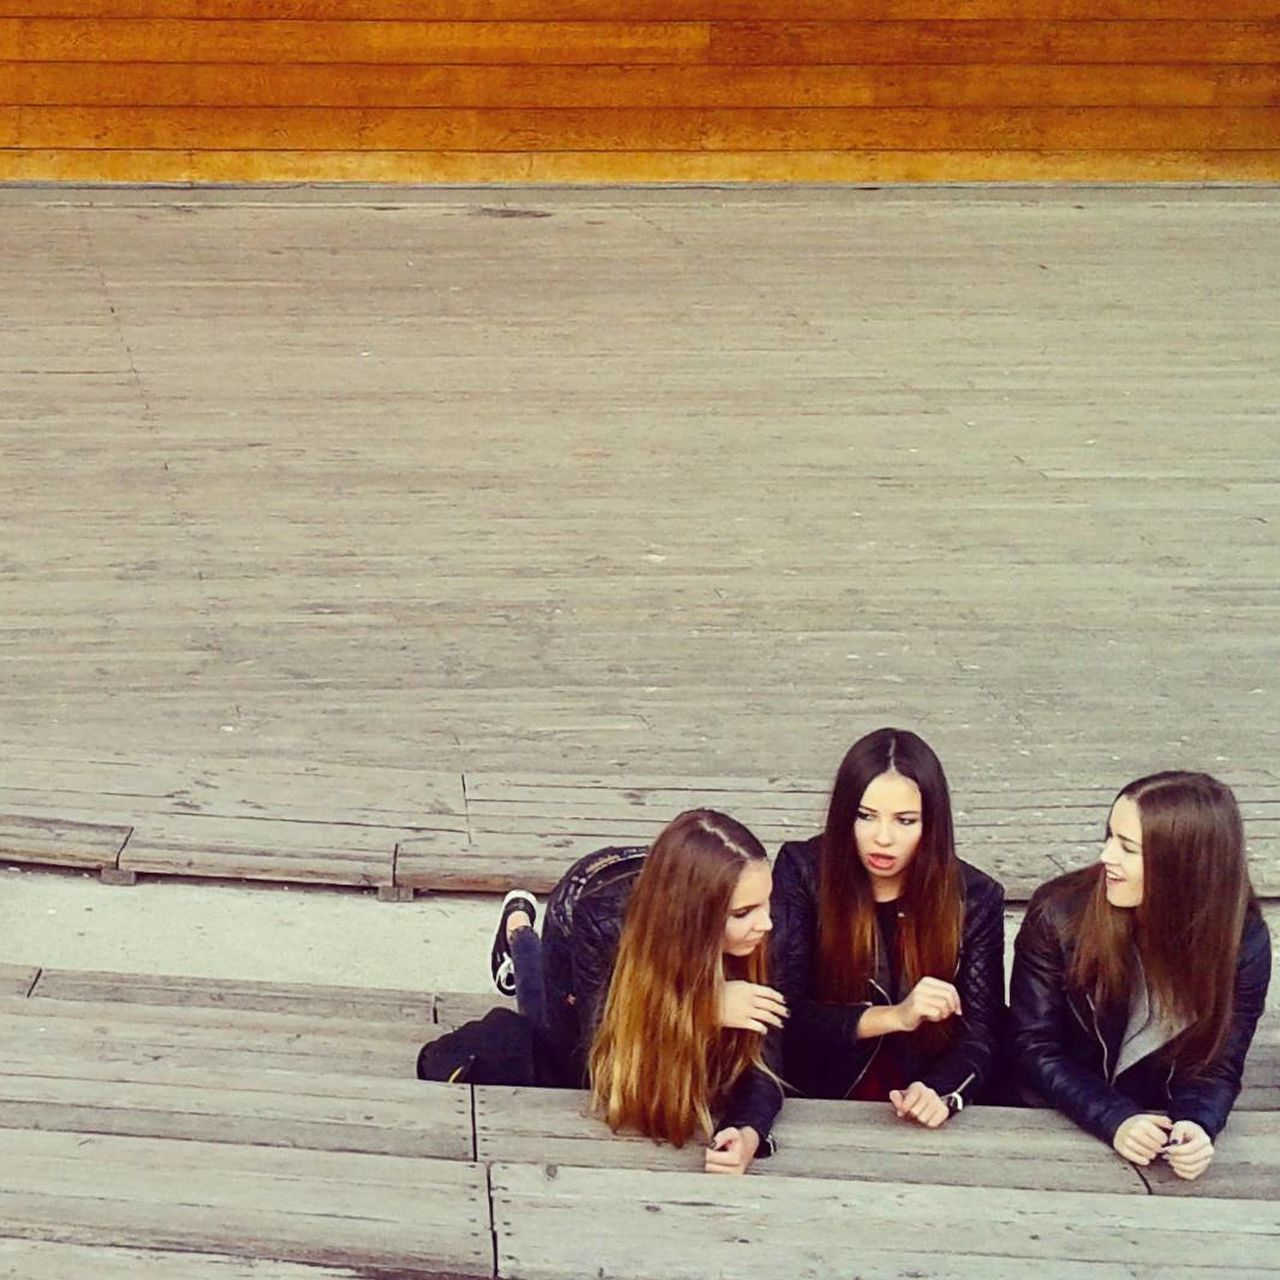 Black Dress Friendship Lifestyles Long Hair Resting Three Girls Togetherness Young Women